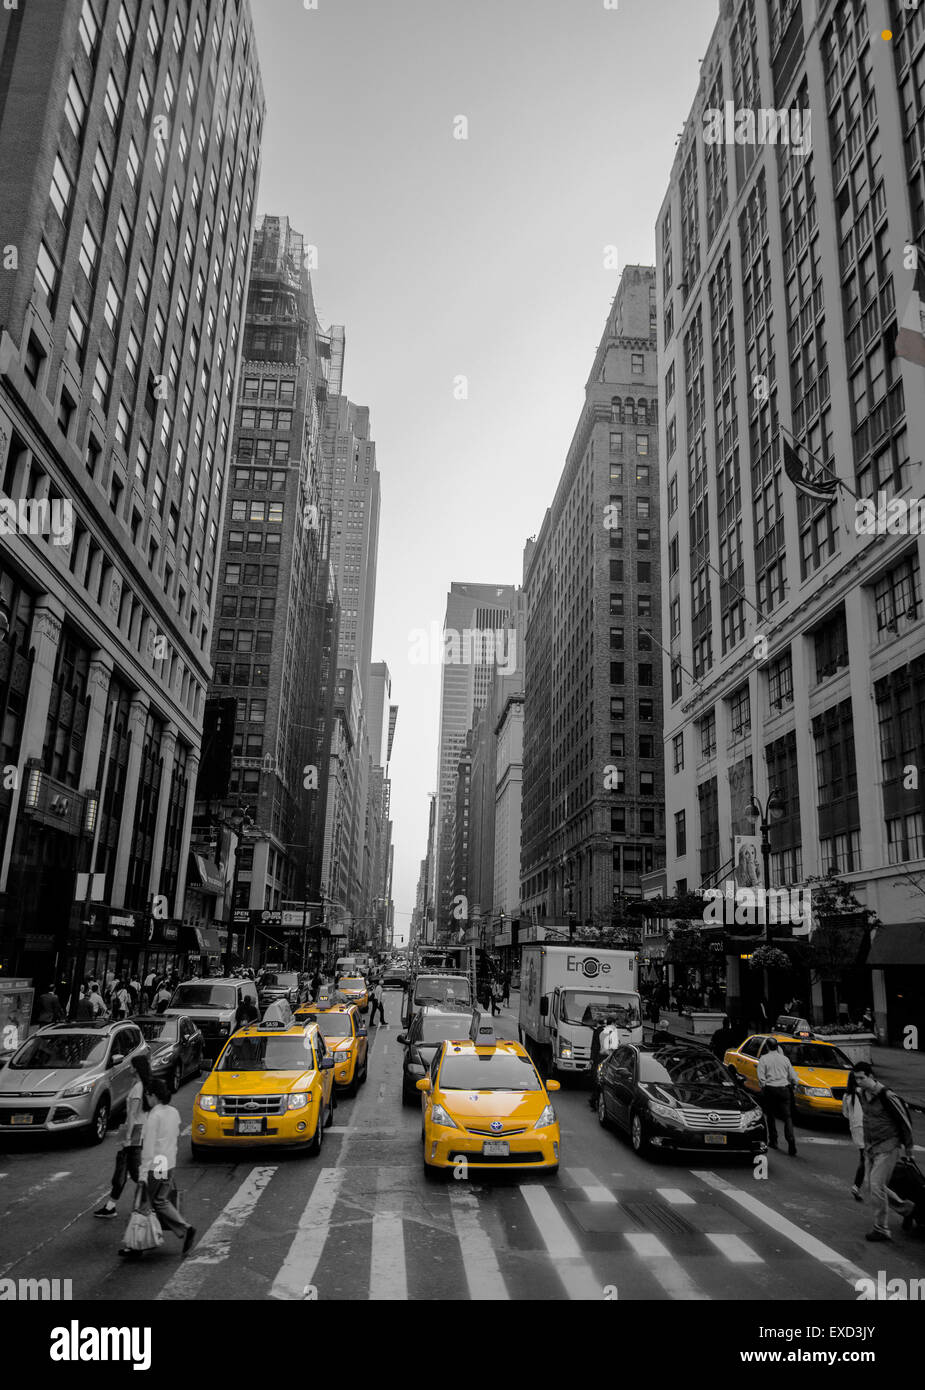 New York Taxi Black And White Stockfotos New York Taxi Black And